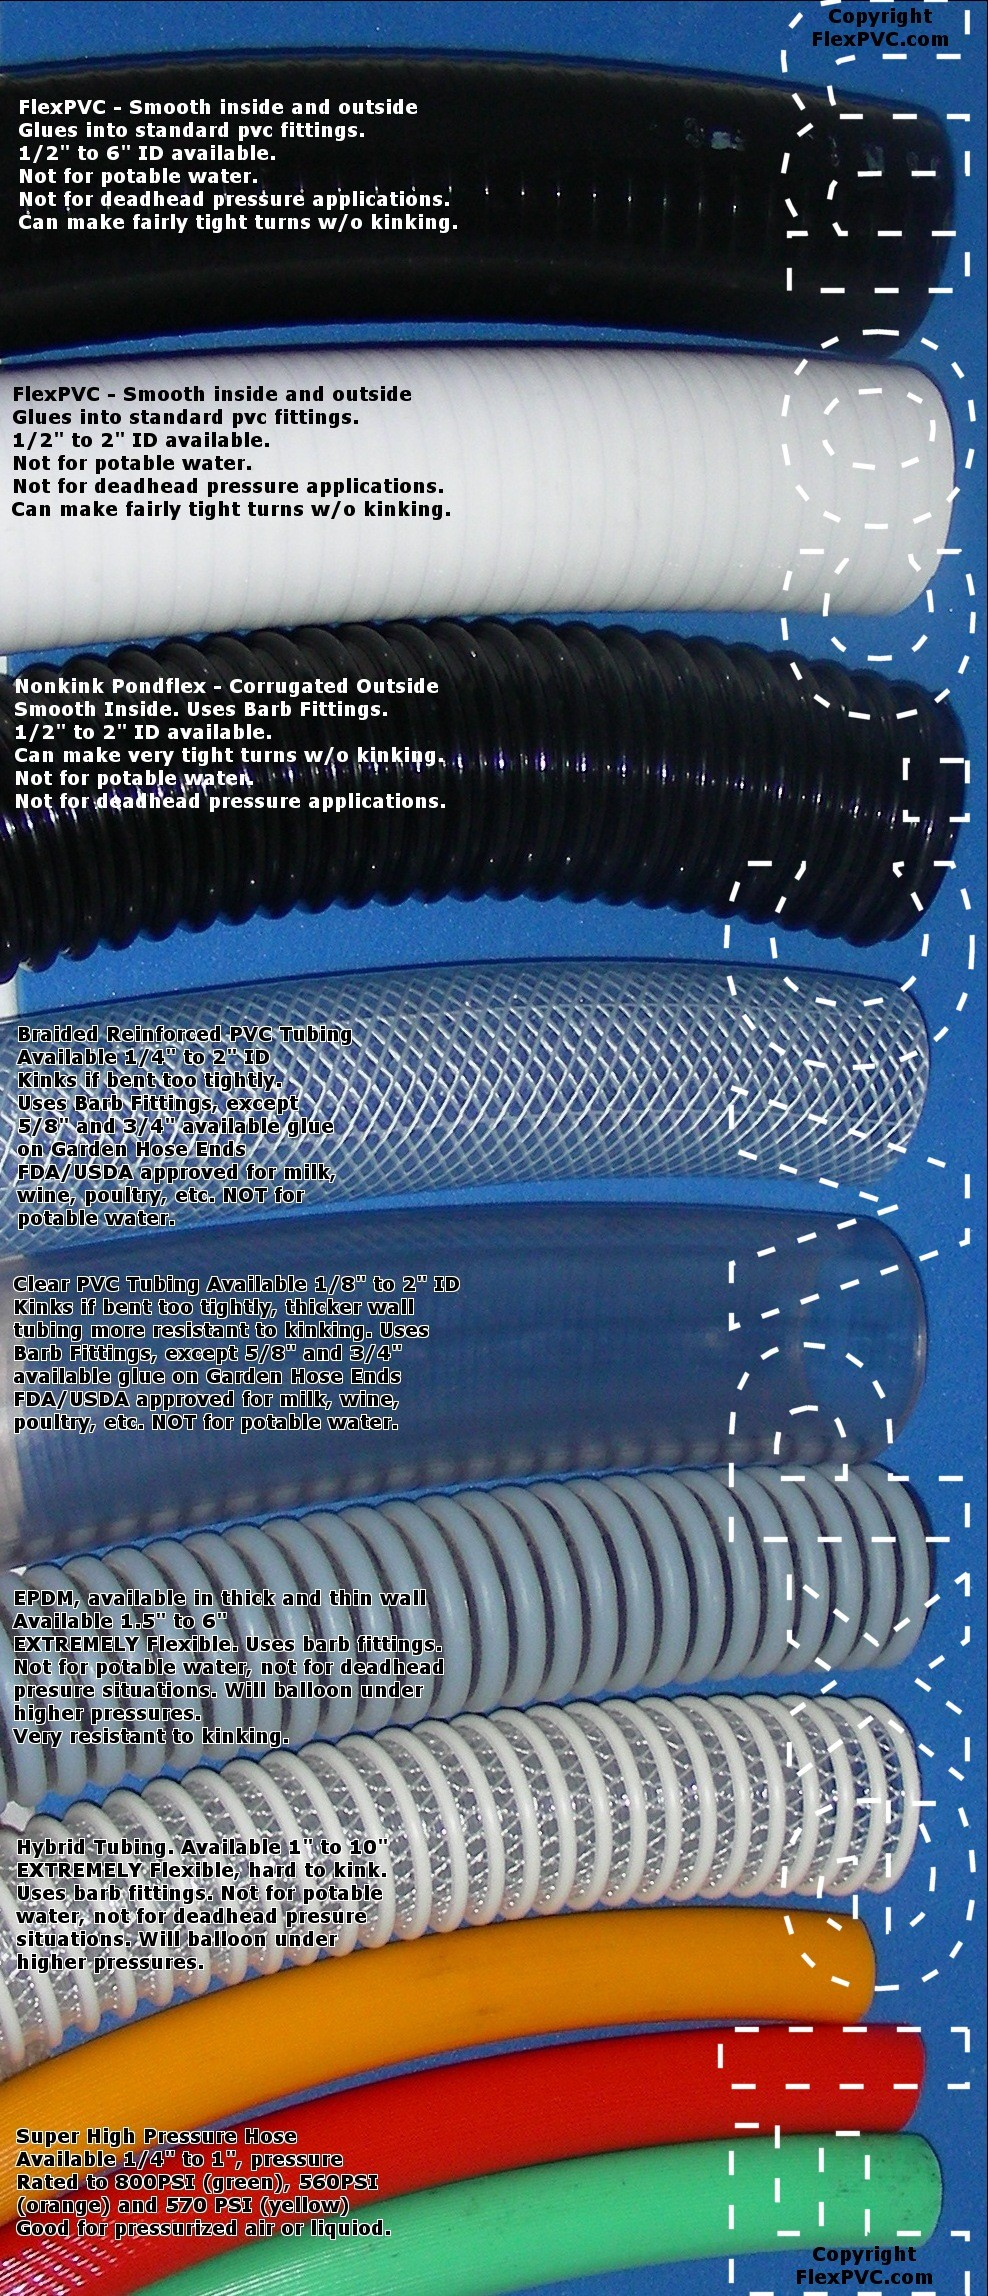 FlexPVC® com FAQ for flexible PVC pipe, rigid pvc pipe, hose